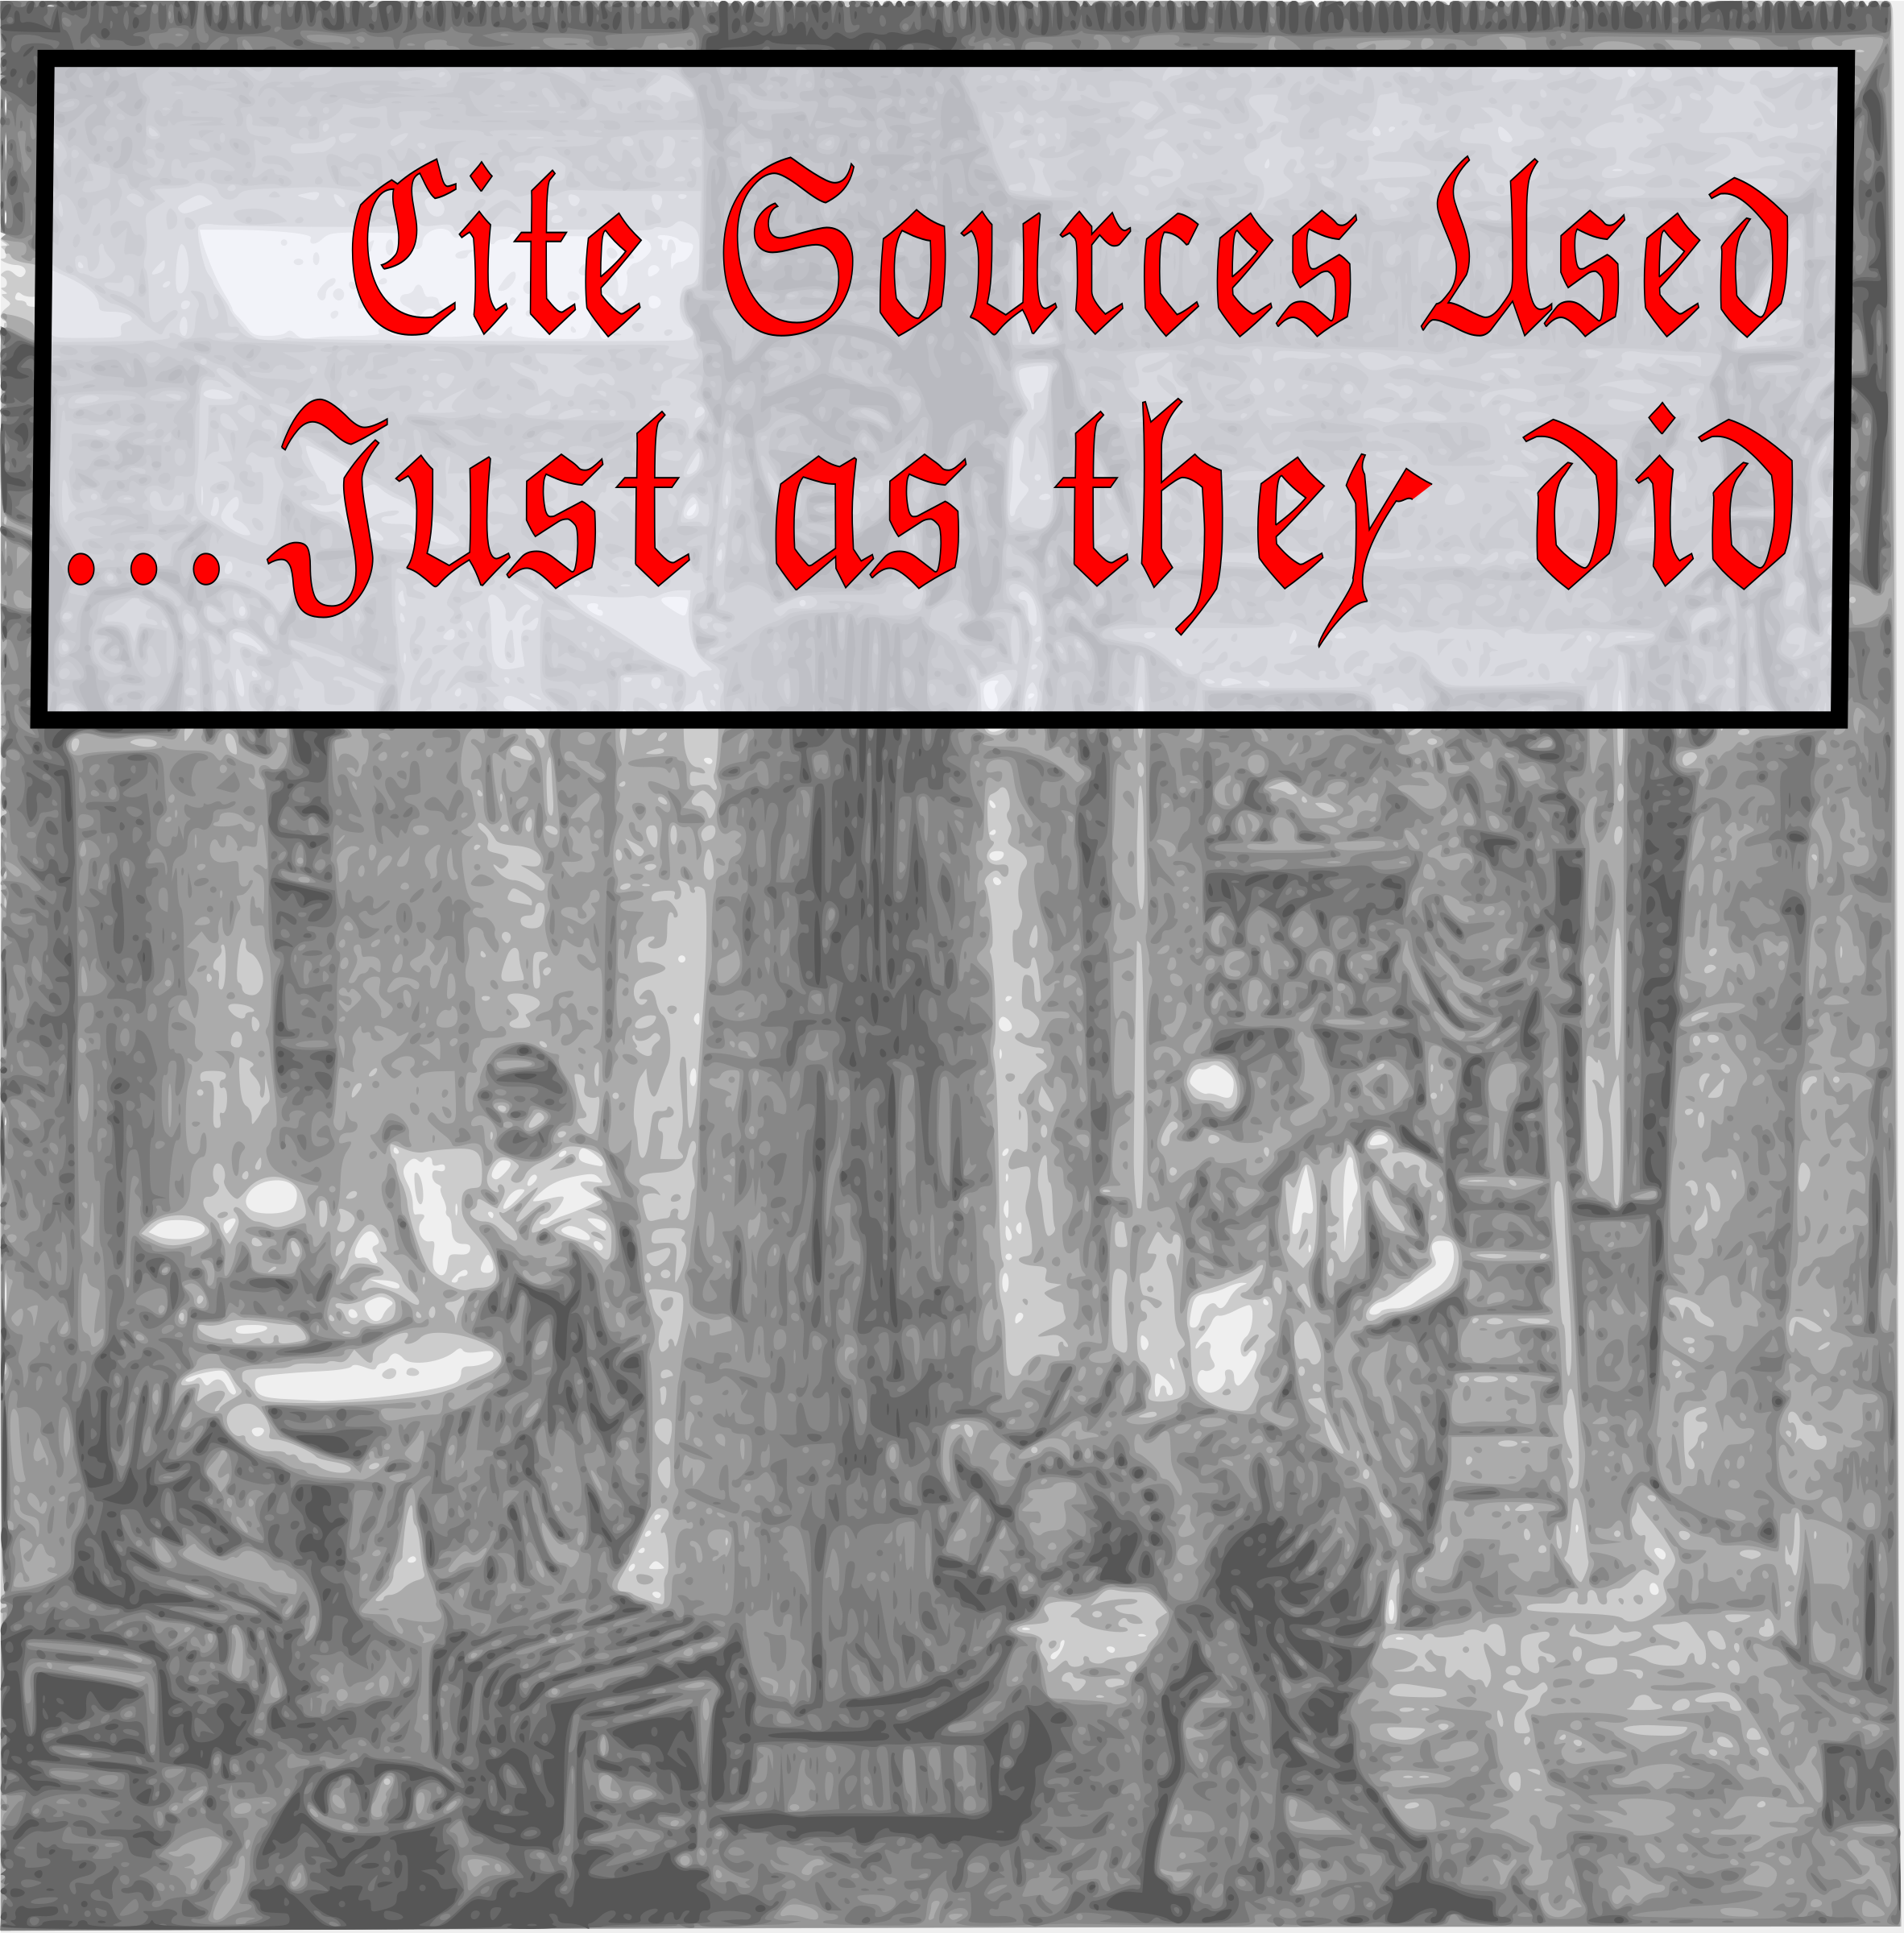 Cite Sources Used ...Just as they did by cibo00